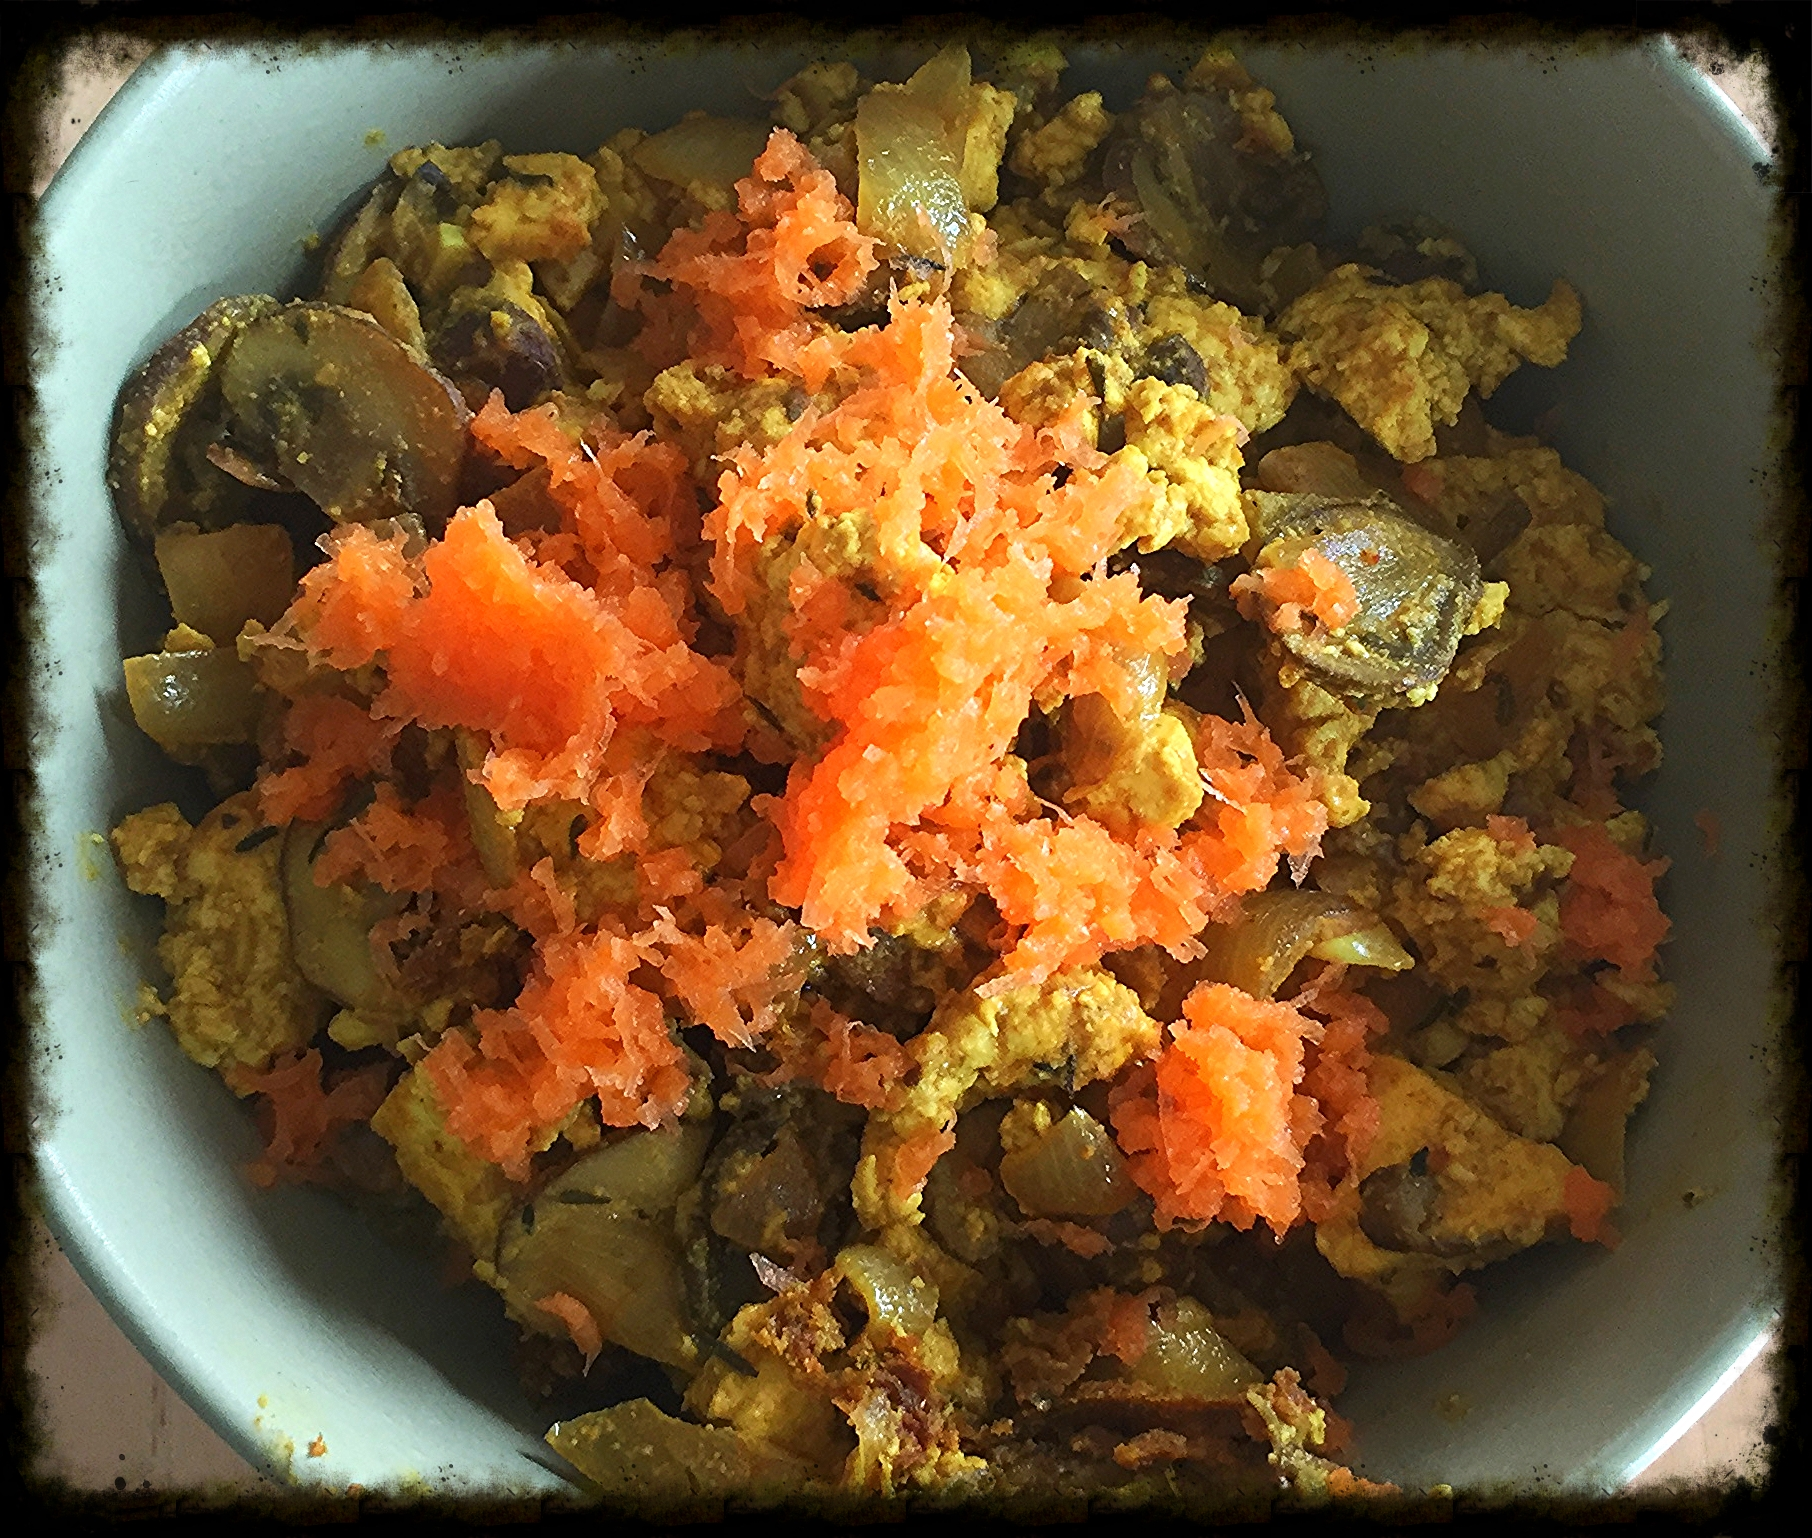 Scrambled tofu using nutritional yeast